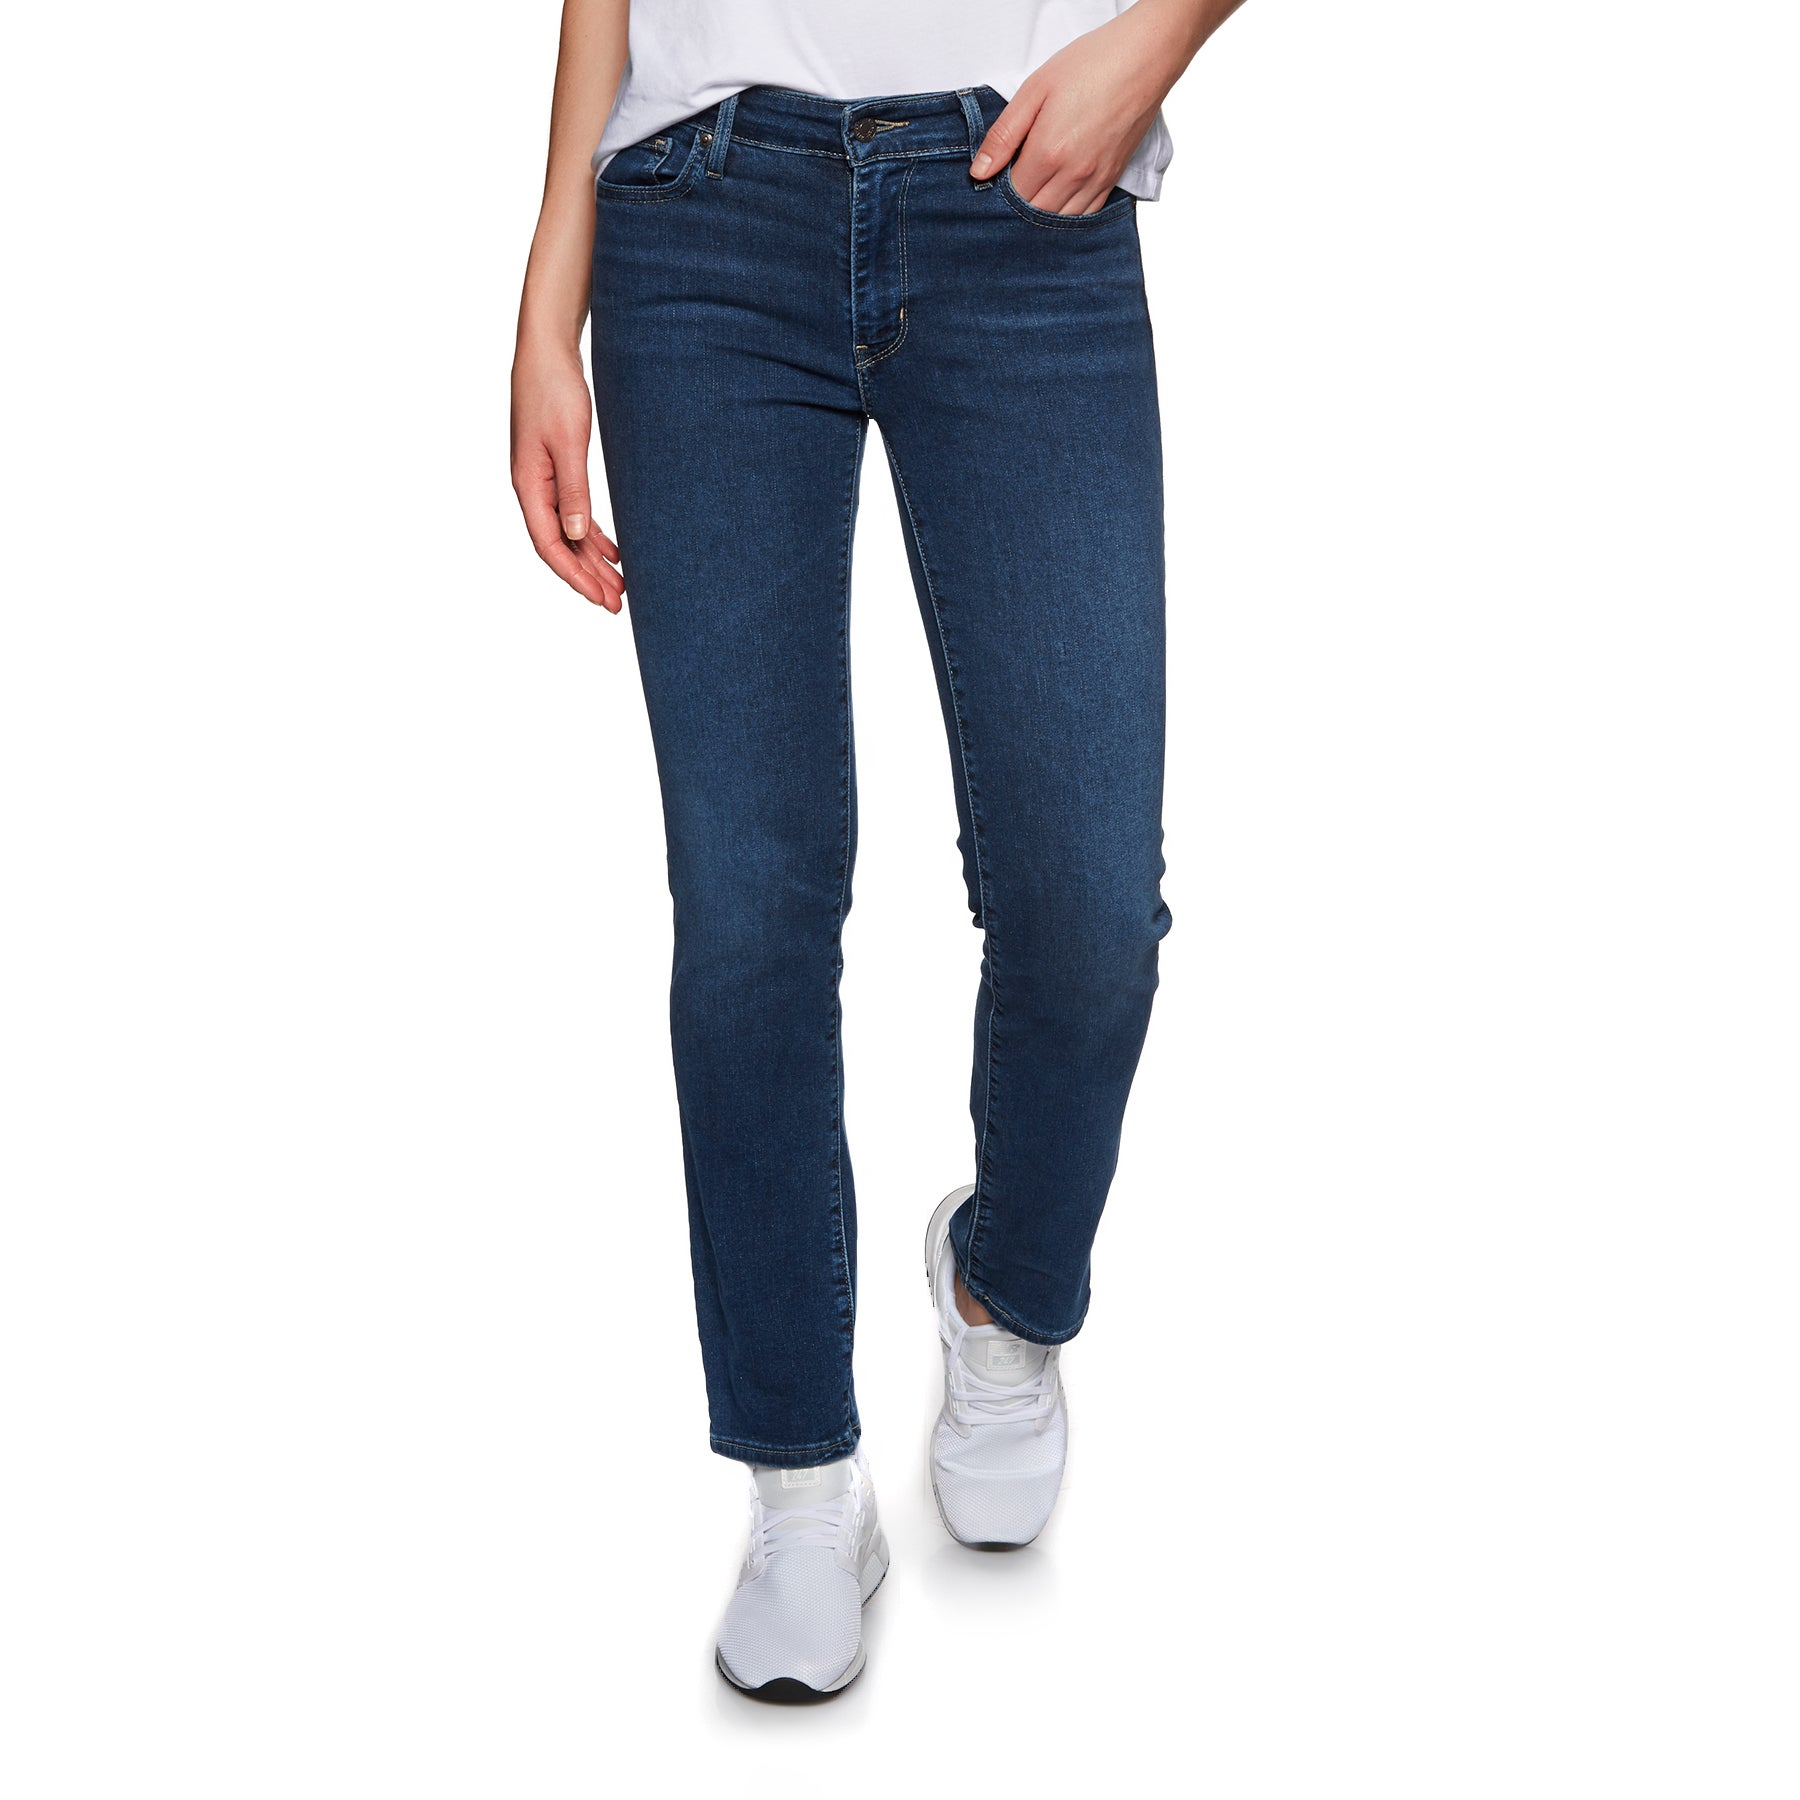 510b6986903 Levis 712 Slim Womens Jeans available from Surfdome